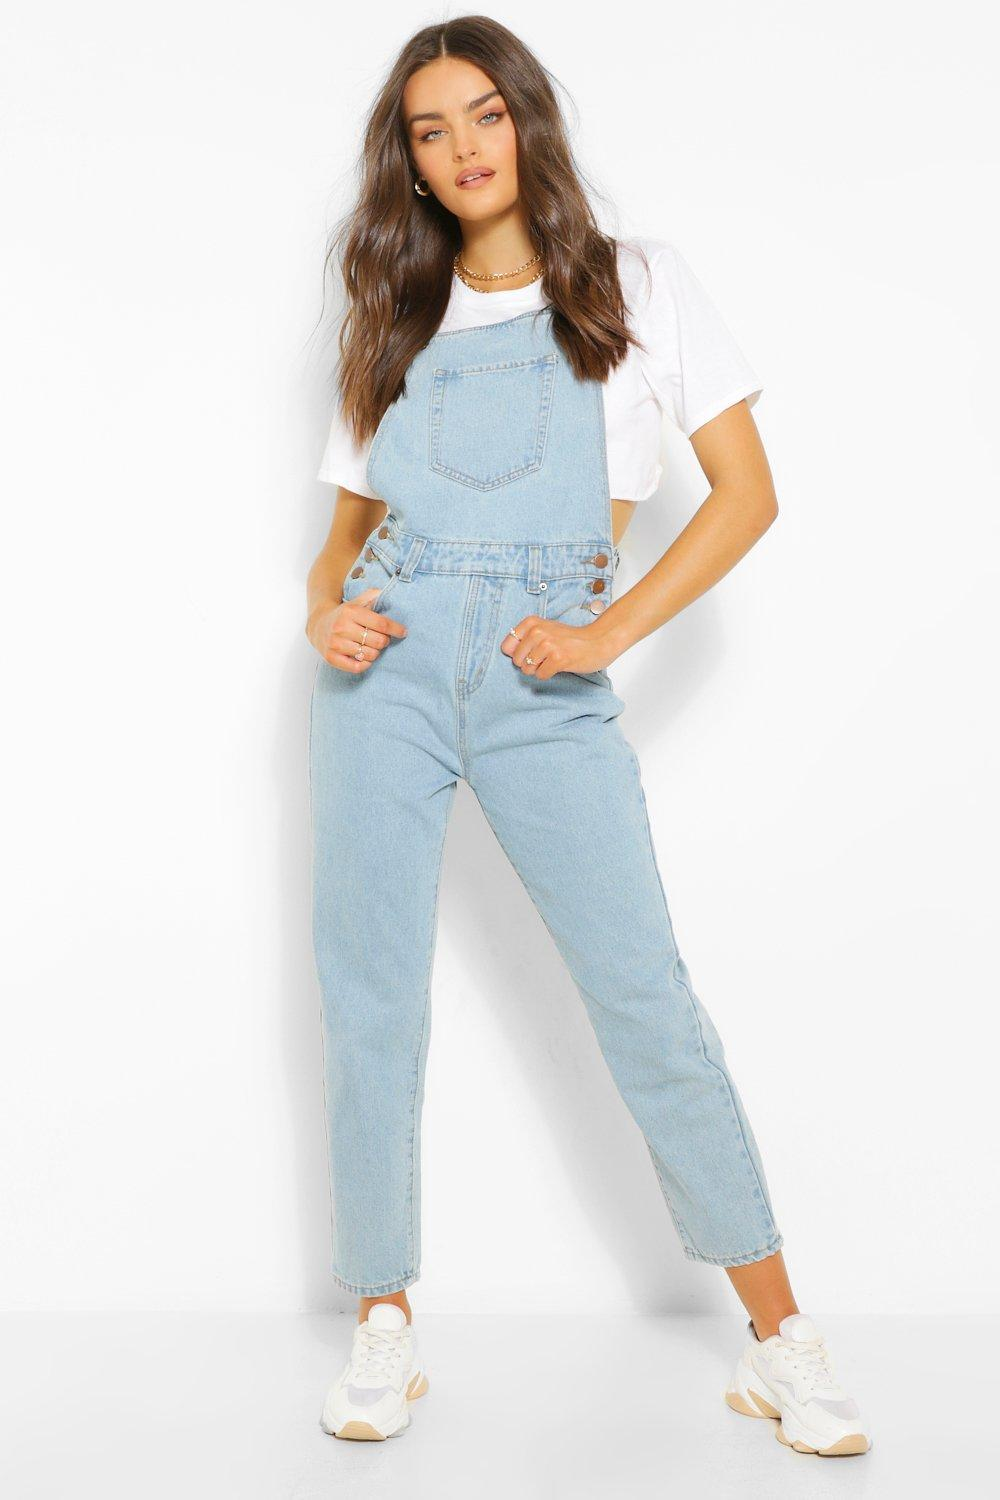 1980s Clothing, Fashion | 80s Style Clothes Womens Denim Mom Dungaree - Blue - 12 $38.50 AT vintagedancer.com